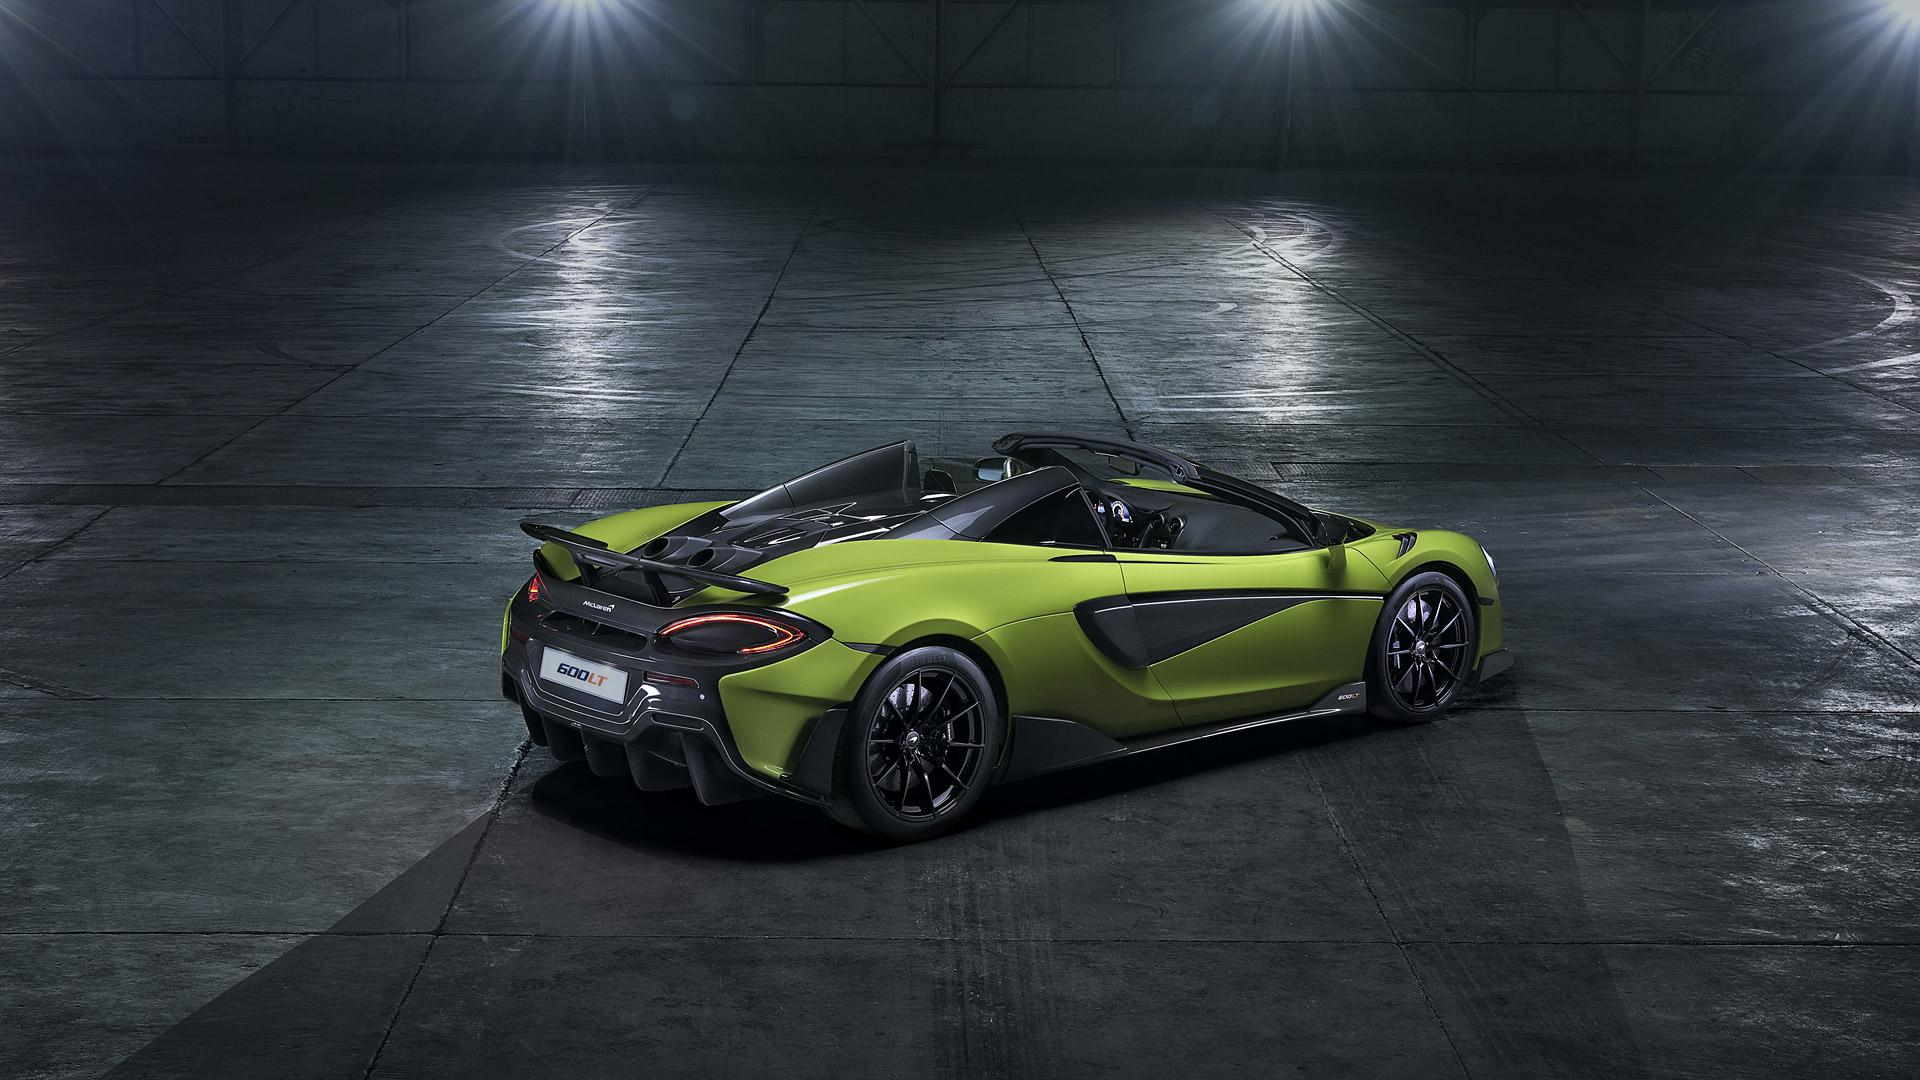 2020 McLaren 600LT Spider Wallpapers & HD Images - WSupercars